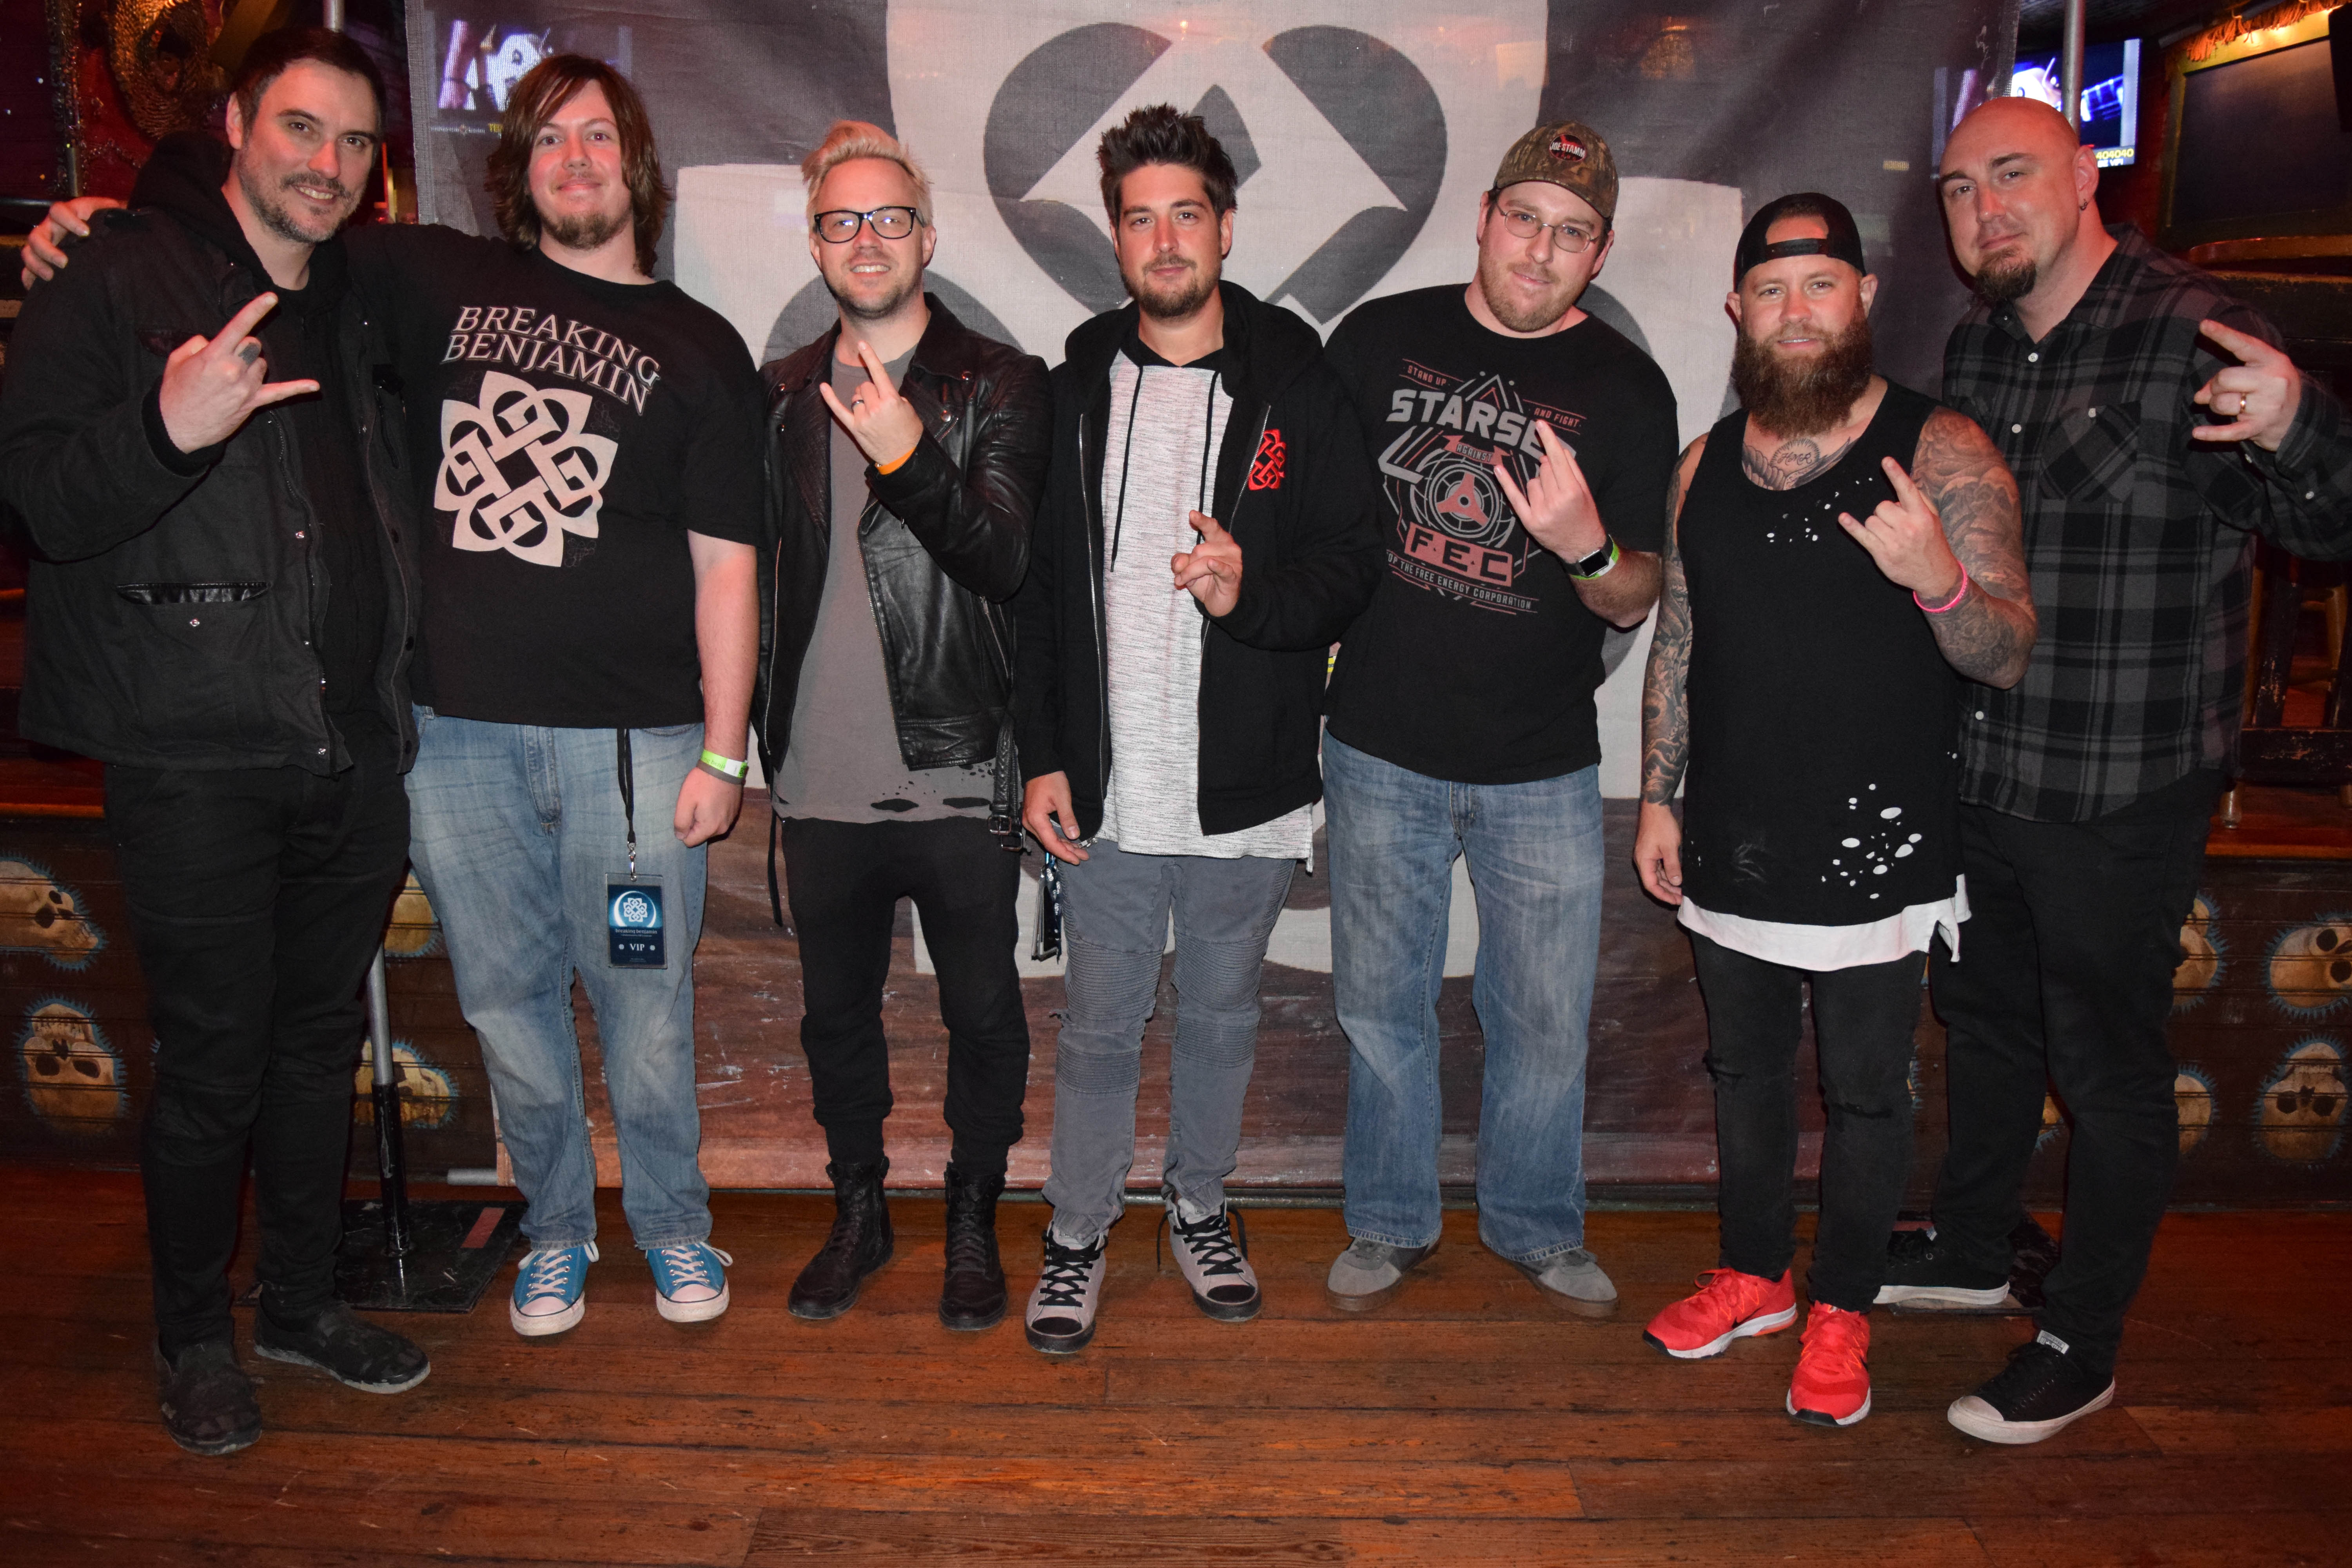 Vip Meet Greet Photos House Of Blues Chicago Il Breaking